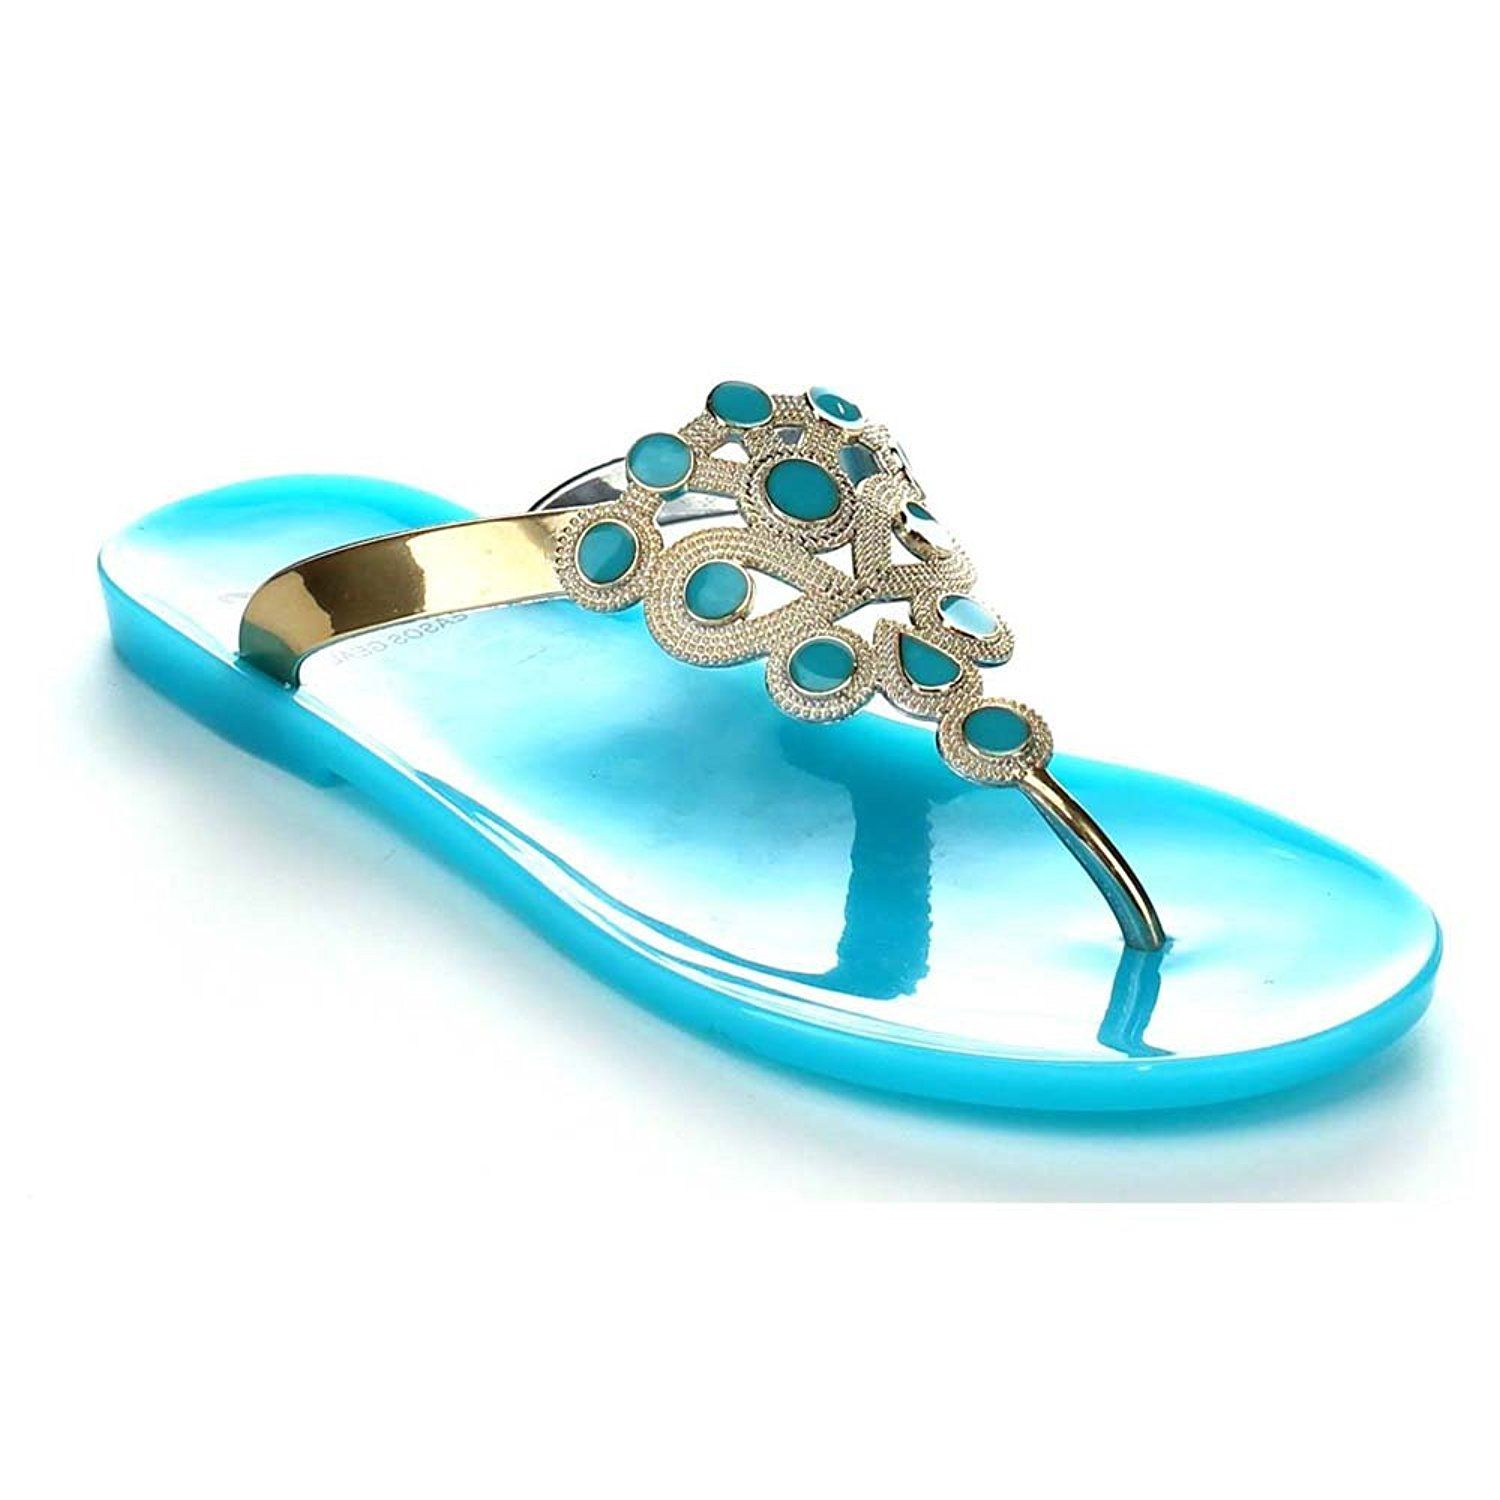 89c816994cc EASOS GEAL AE323 Women s Slip-on T-Strap Flat Jelly Thong Sandals   Read